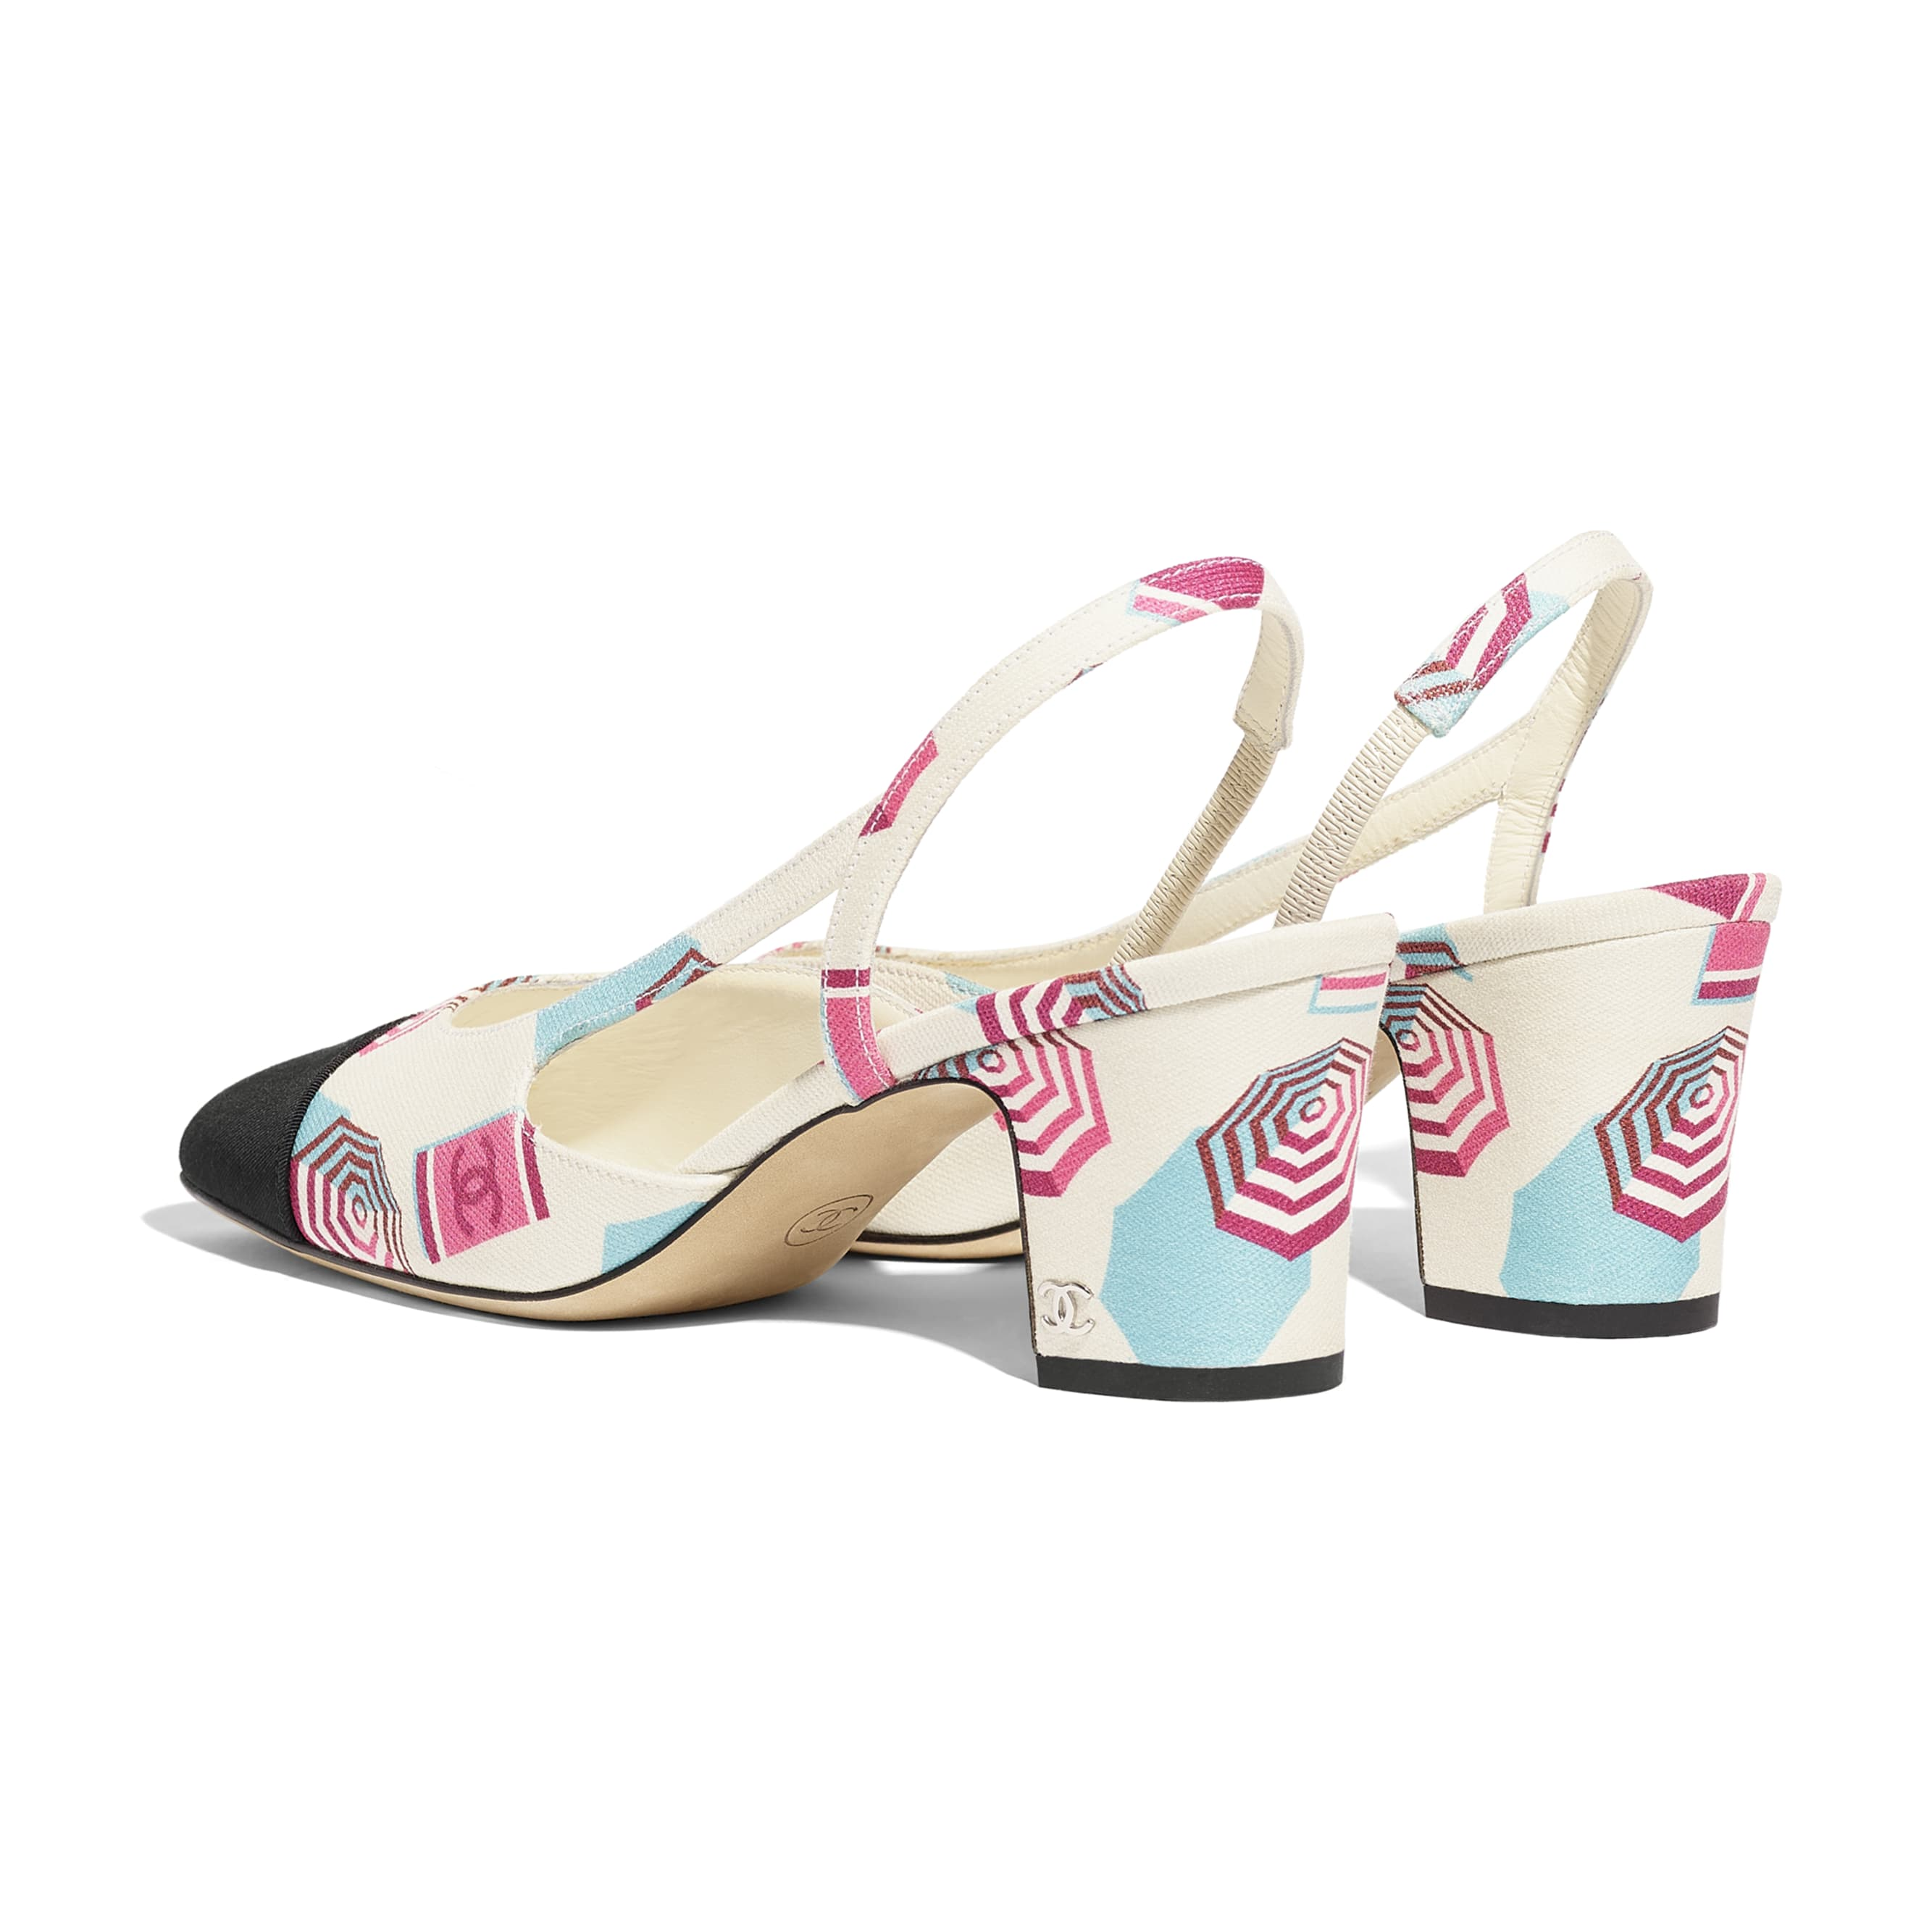 Slingbacks - Ecru, Blue, Pink & Black - Fabric - Other view - see standard sized version